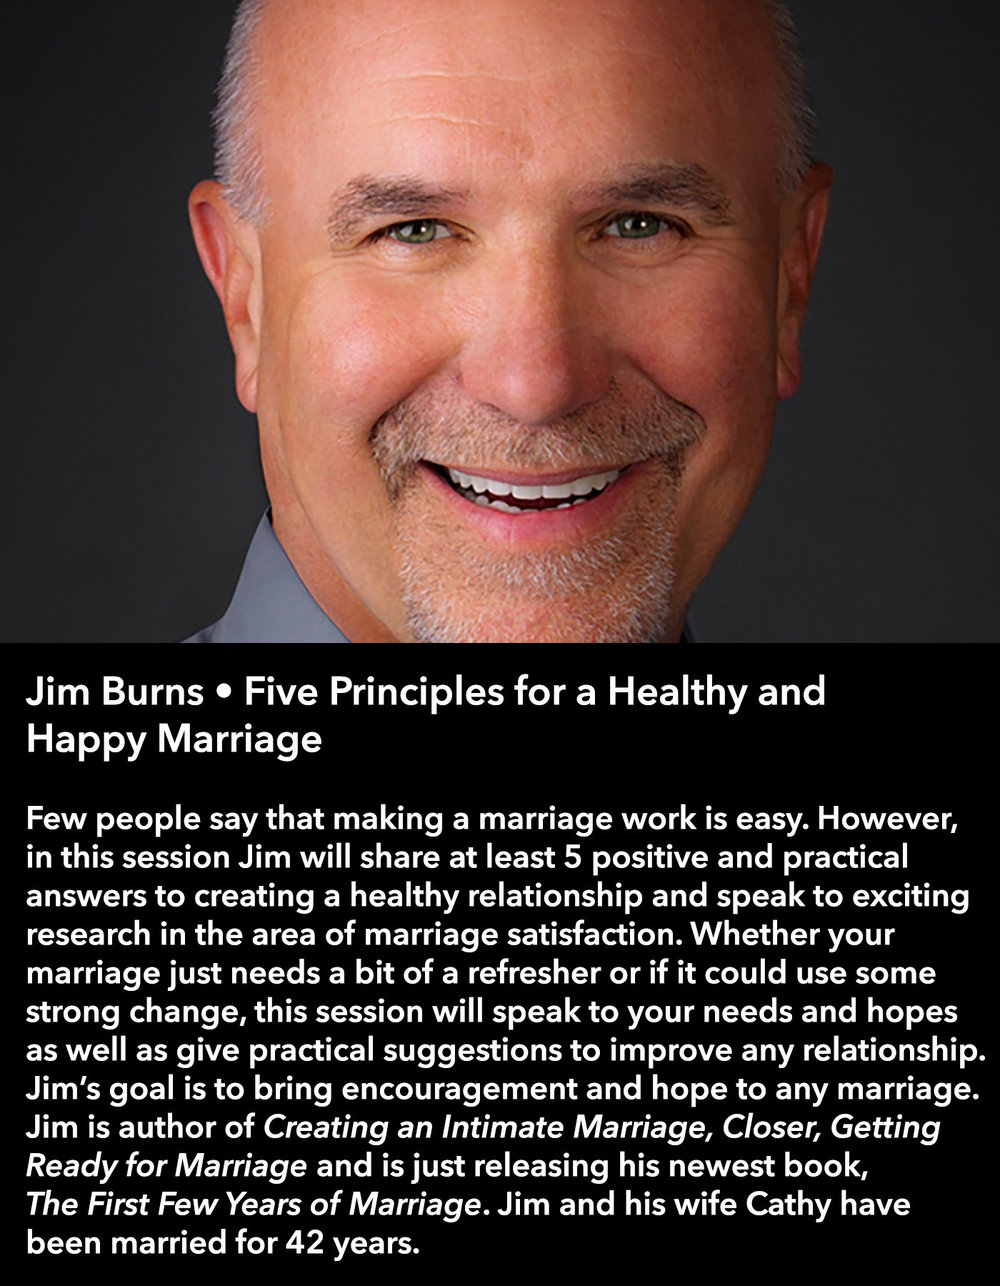 Jim Burns • Five Principles for a Healthy and Happy Marriage • Friday Morning, March 17 • 10:30 – 11:45 am